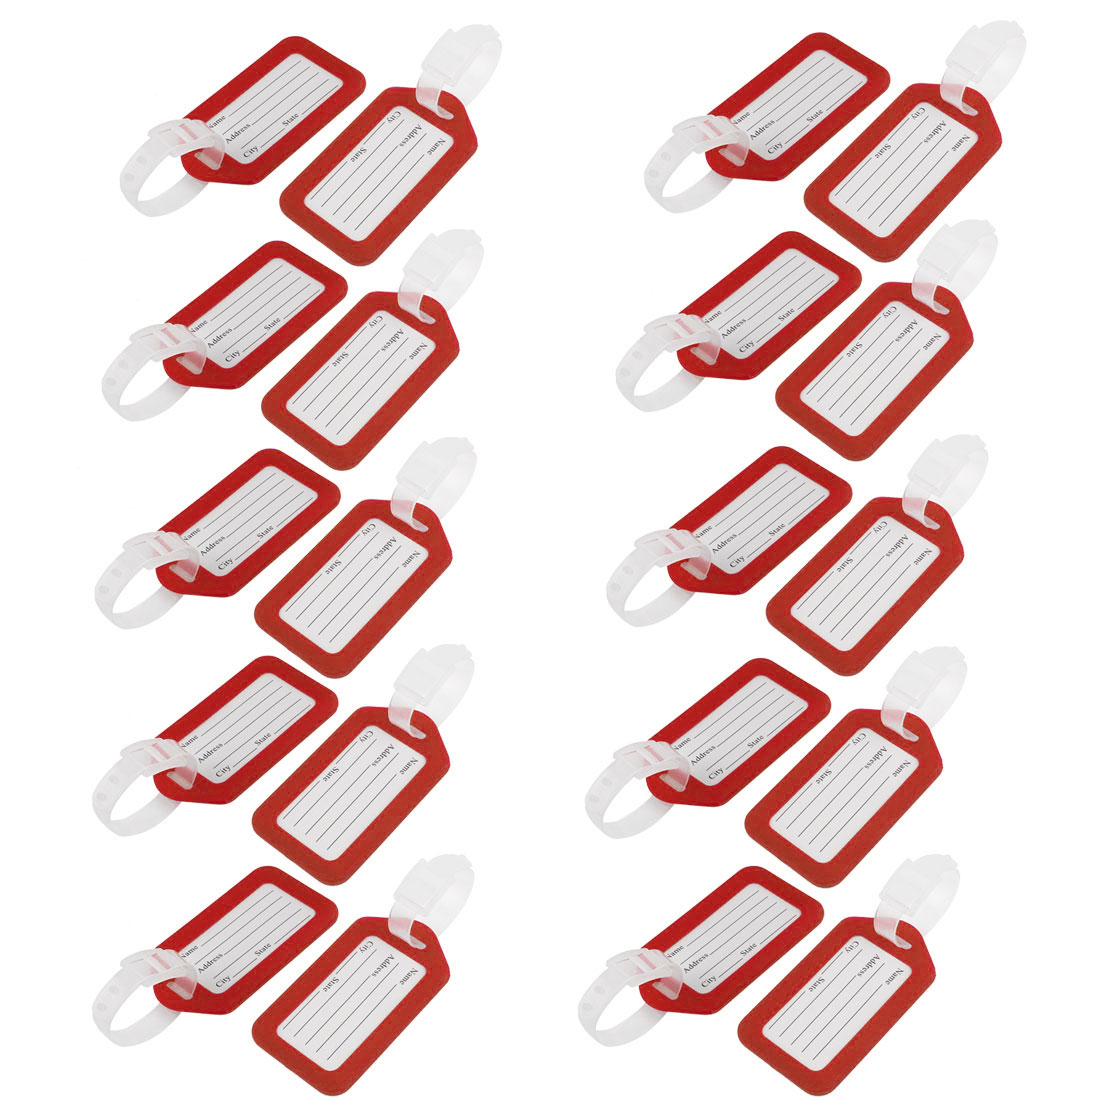 Red White Rectangle Design Plastic Bag ID Name Label Luggage Tag 20 Pcs